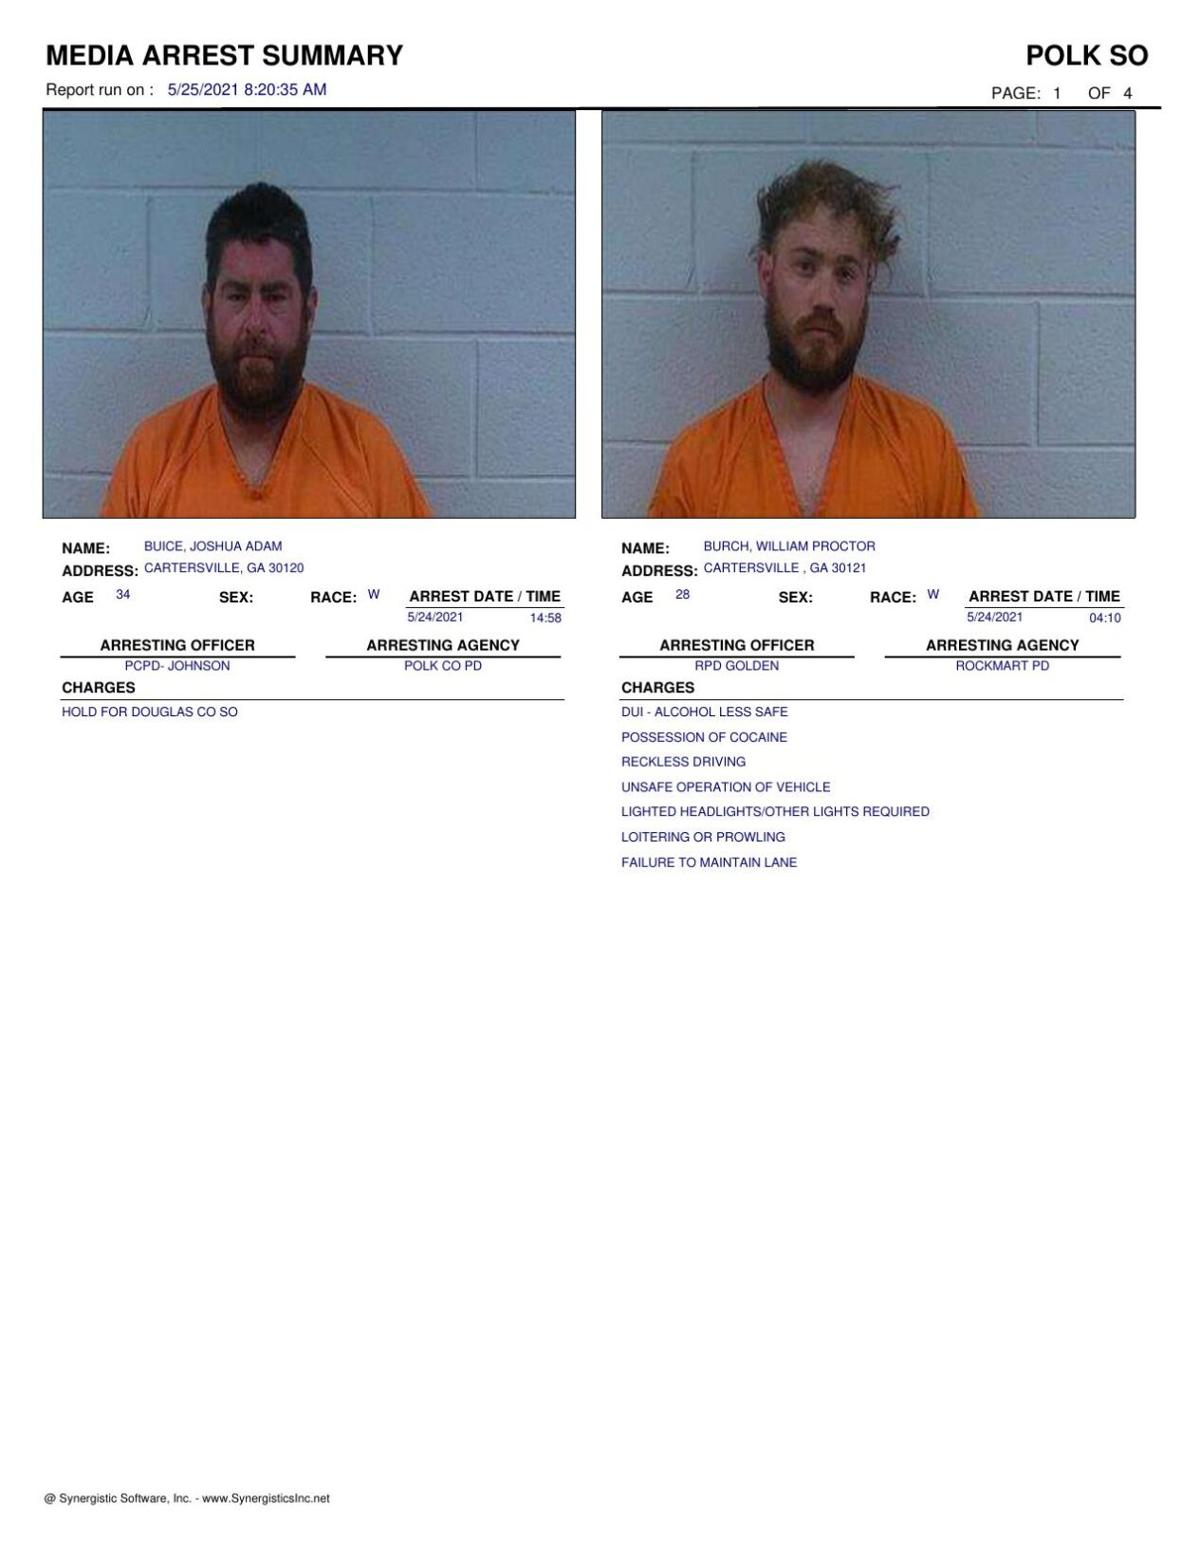 Polk County Jail Report for Tuesday, May 25